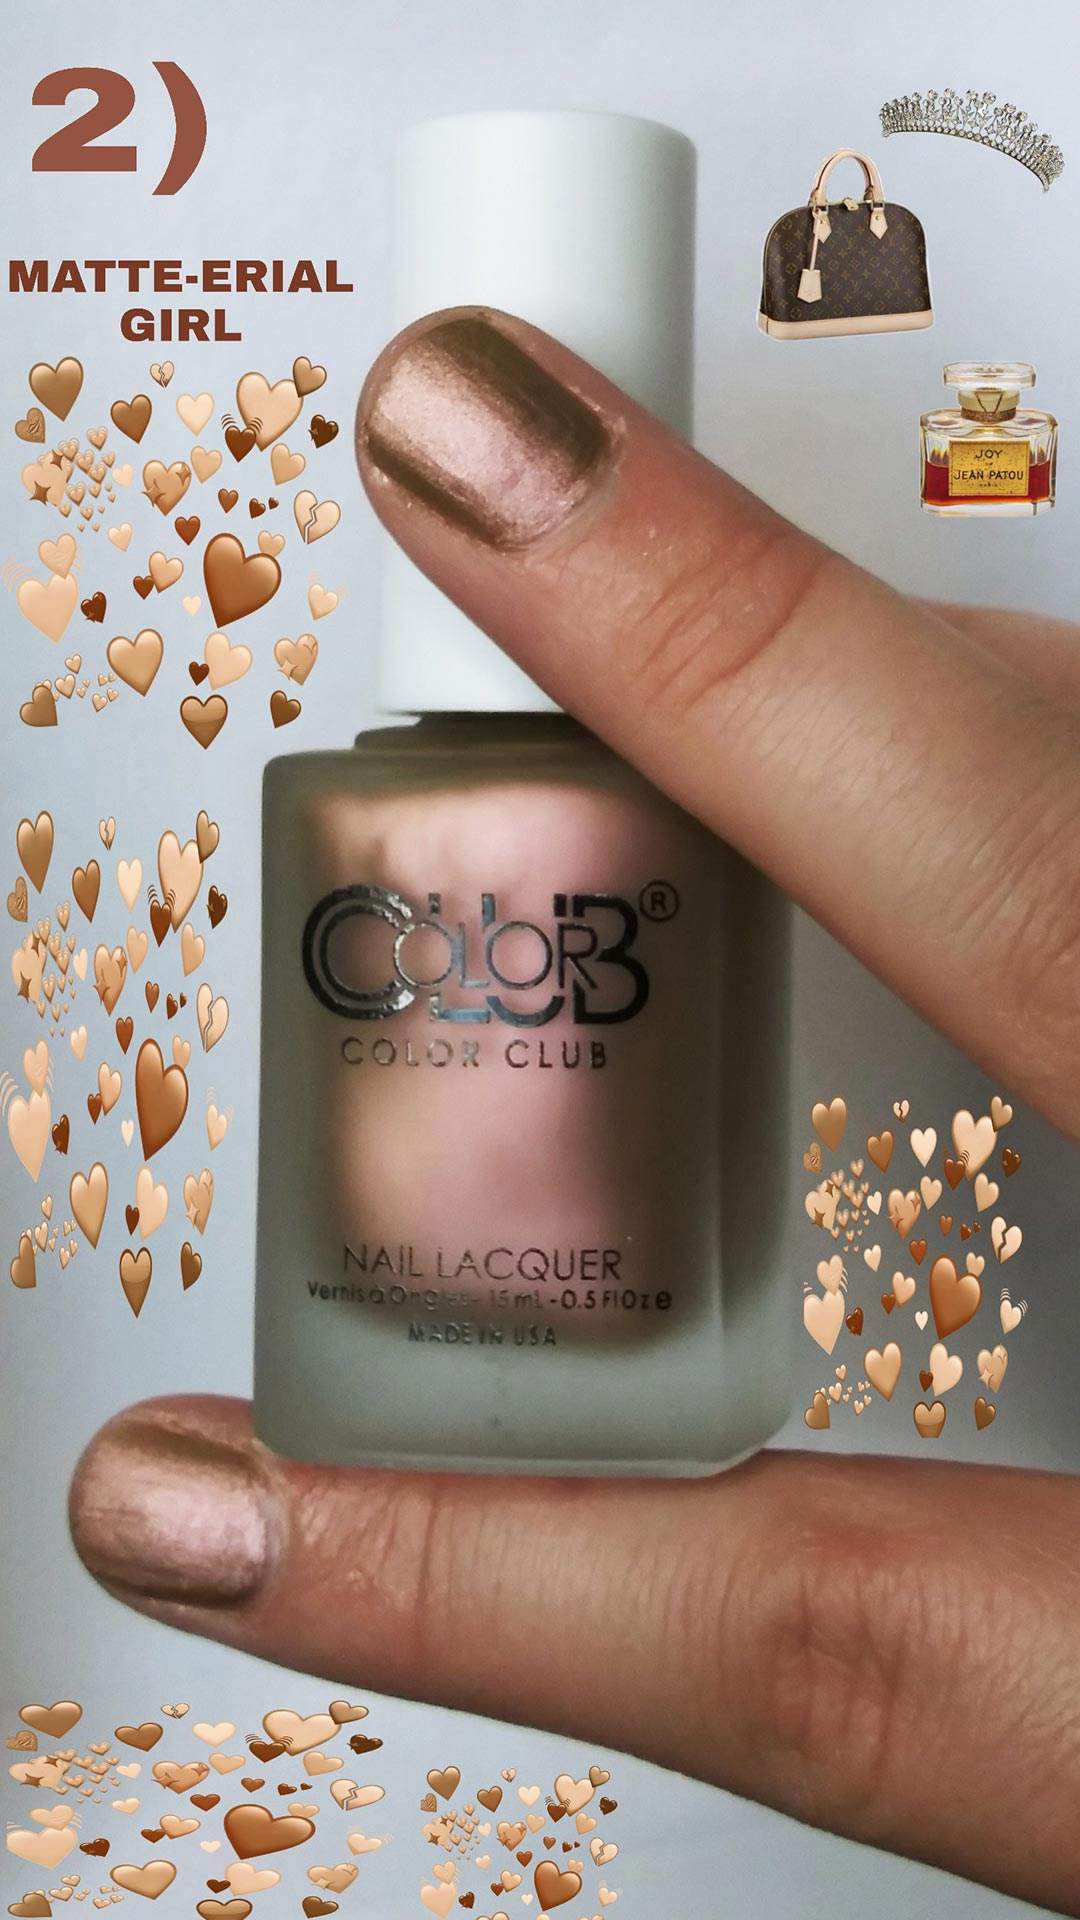 02_Color_Club_Nail_Polish_Collection.jpg.jpg